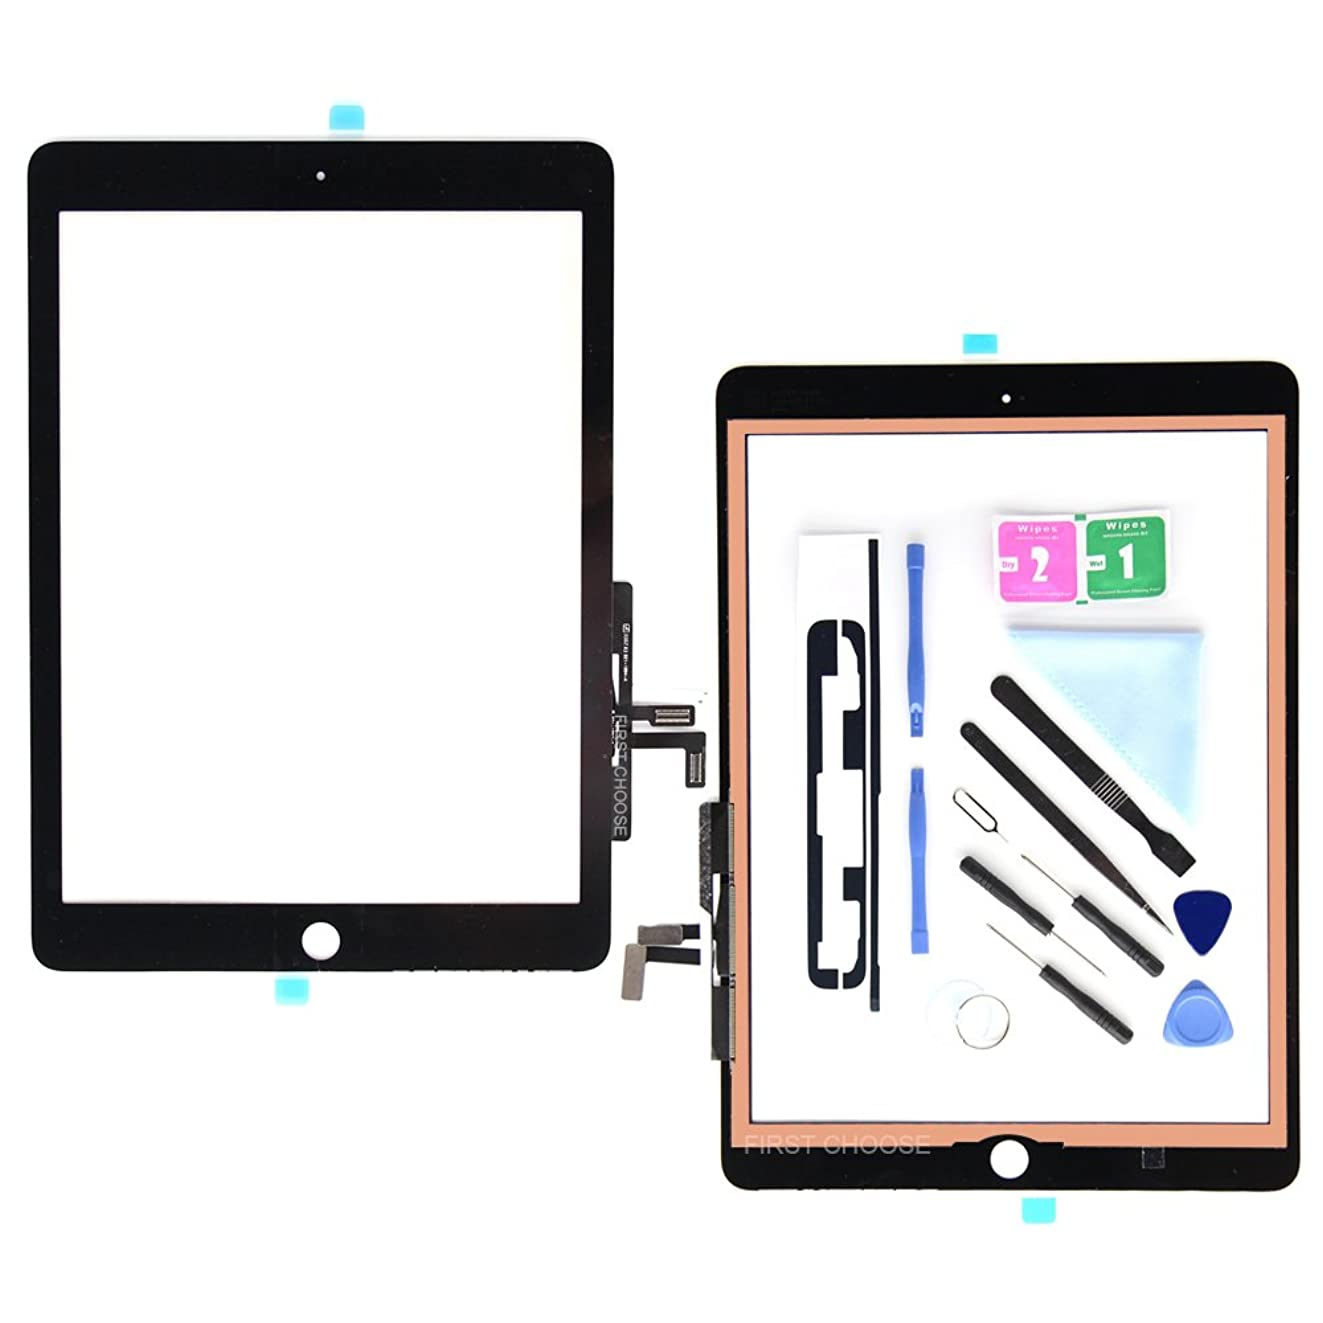 Black Digitizer for iPad 9.7 (A1822, A1823)/Ipad 5 Ipad Air 1st Touch Screen Digitizer - Front Glass Replacement with Tool Repair Kits + Adhesive